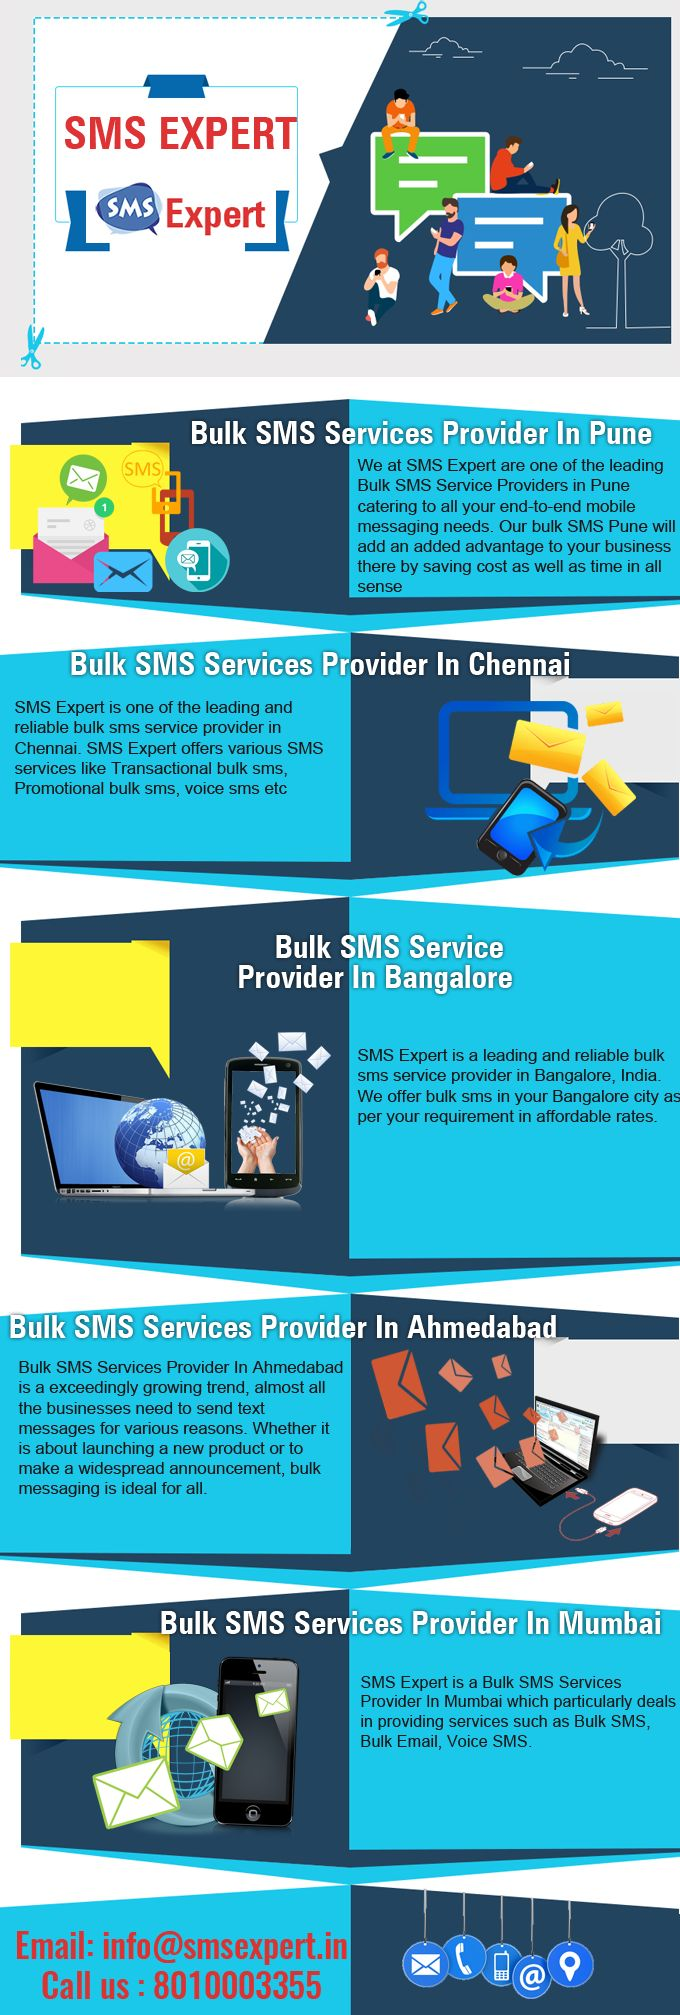 We at SMS Expert are one of the leading Bulk SMS Service Providers in Pune catering to all your end-to-end mobile messaging needs. Our bulk SMS Pune will add an added advantage to your business there by saving cost as well as time in all sense. Bulk SMS Service in Pune is a Tool to sending the sms or text message in mass without using a mobile phone. Actually using of a Bulk SMS gateway would be to push the simple message to a mobile phone.